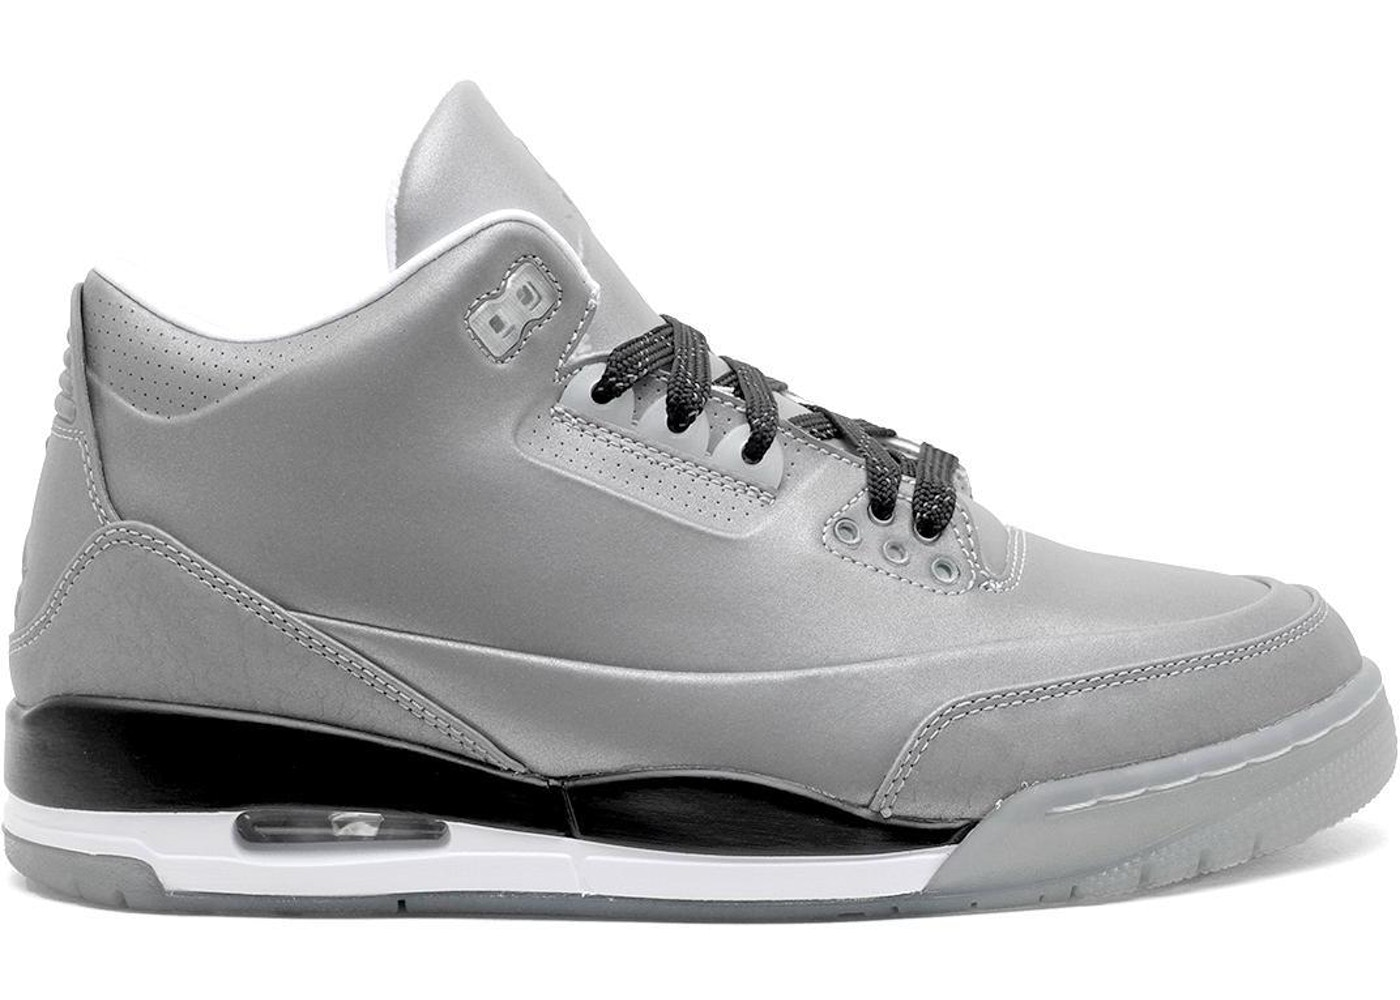 on sale 89cf0 89b19 Jordan 3 Retro 5Lab3 Silver - 631603-003